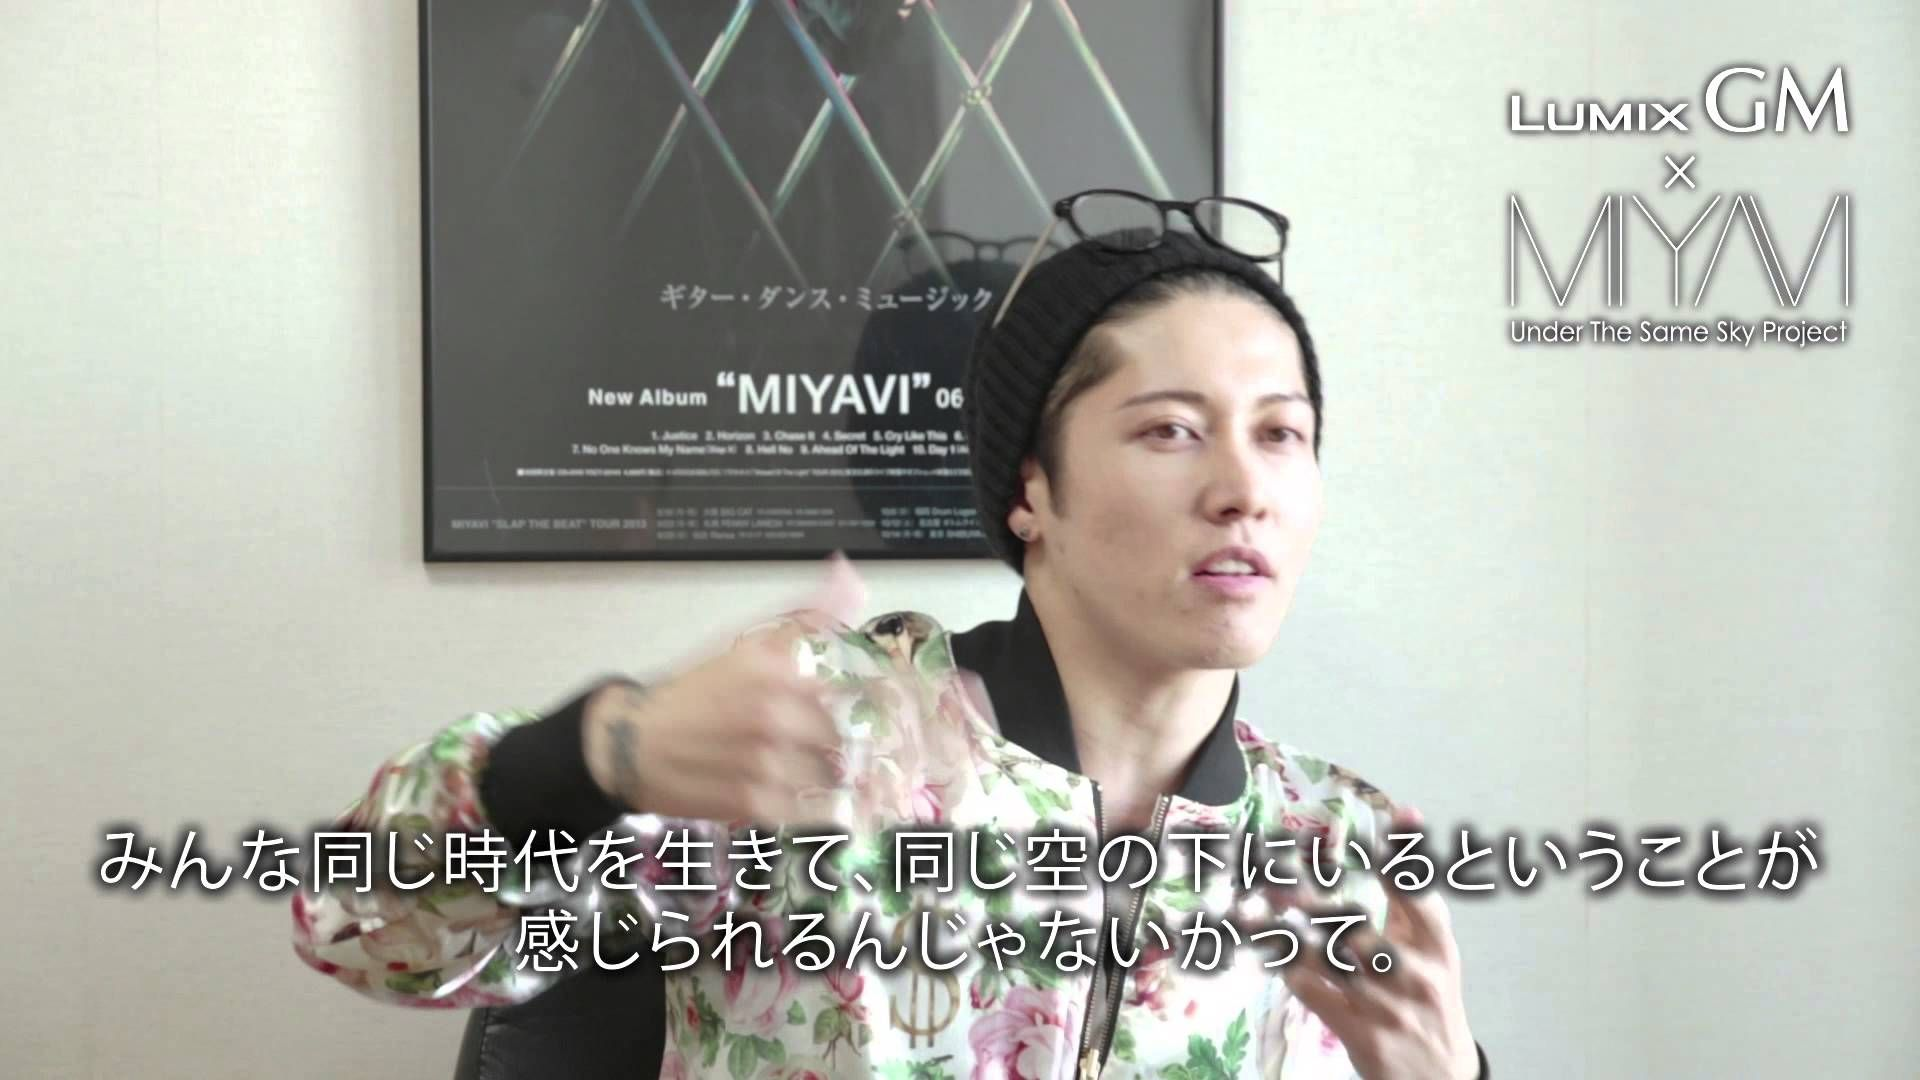 Lumix Gm1 X Miyavi Under The Same Sky Project Behind The Scenes